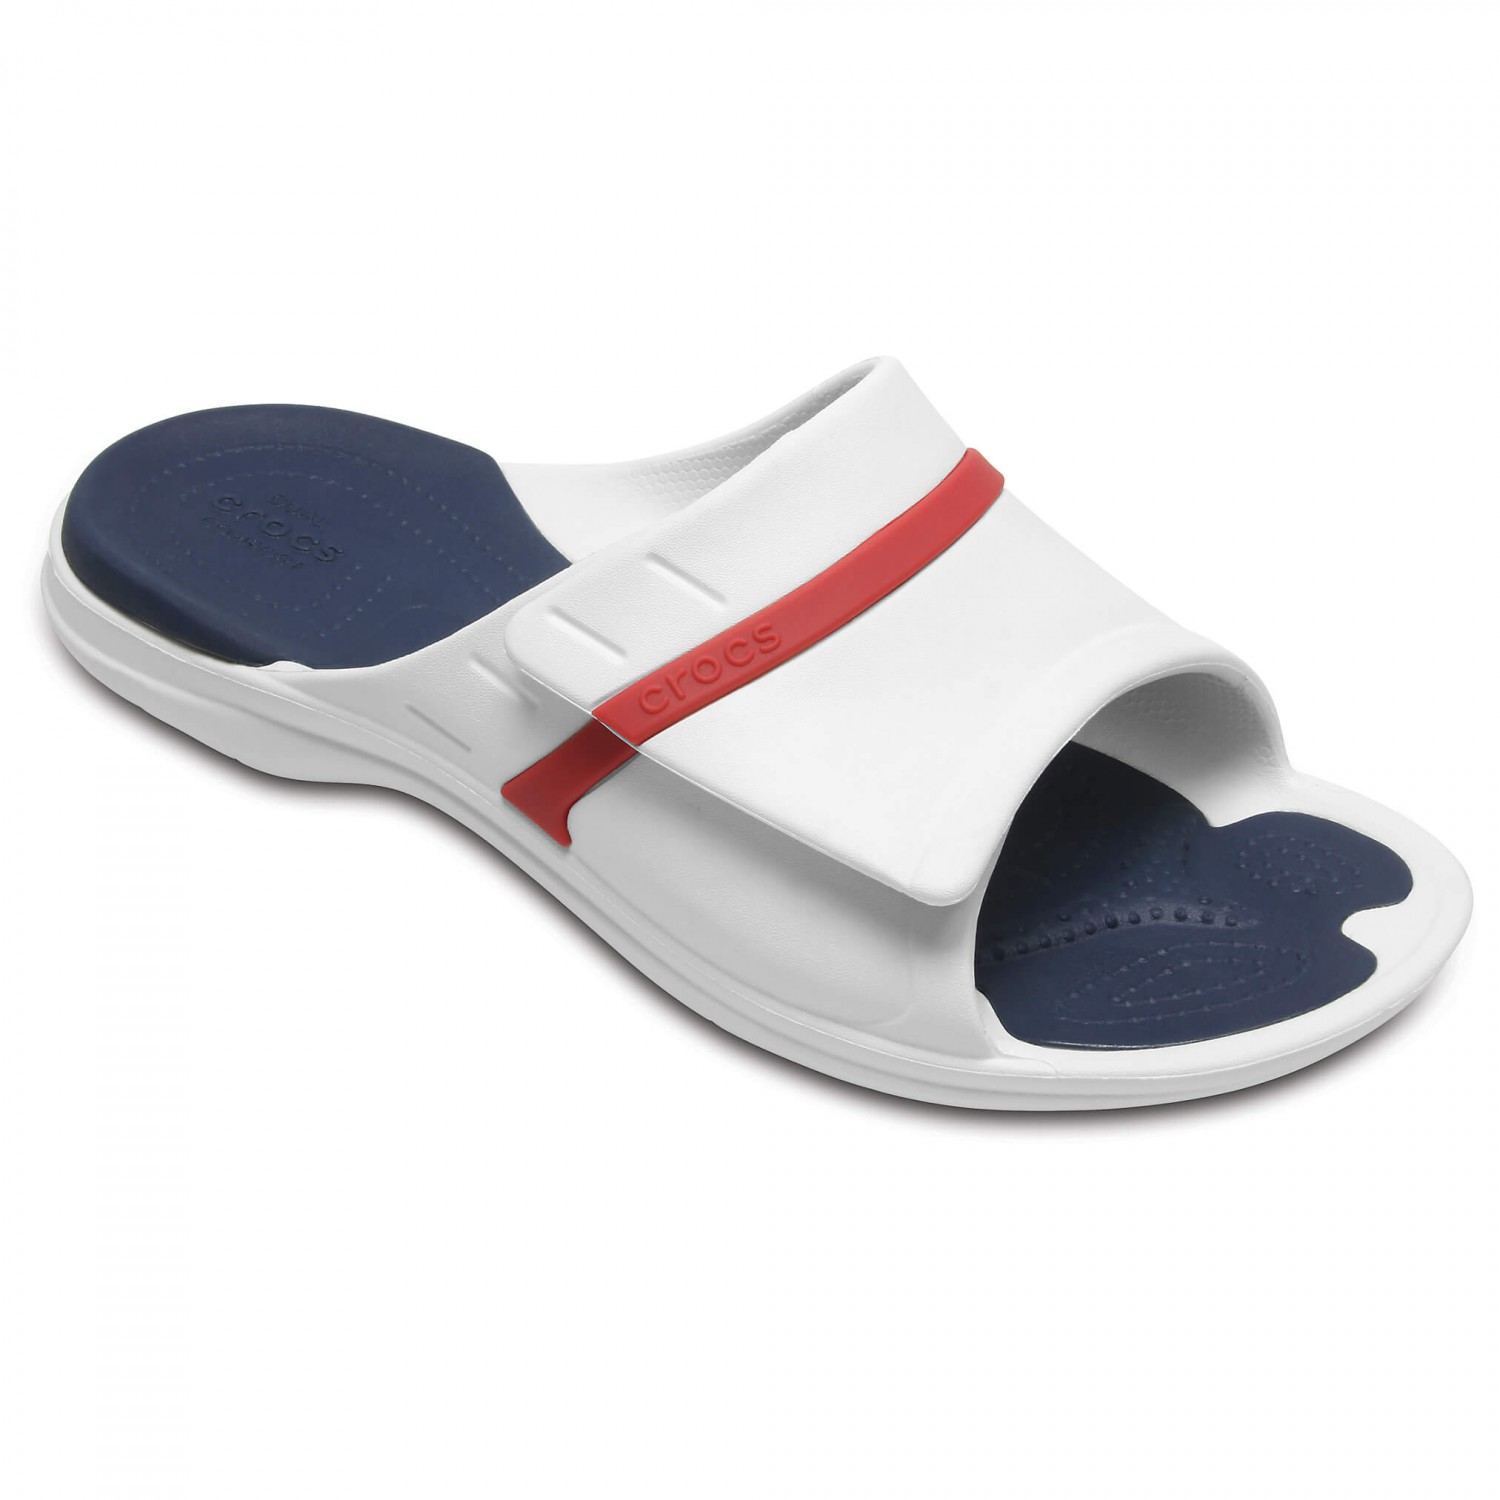 5bb483c63f6e Crocs - Modi Sport Slide - Sandals